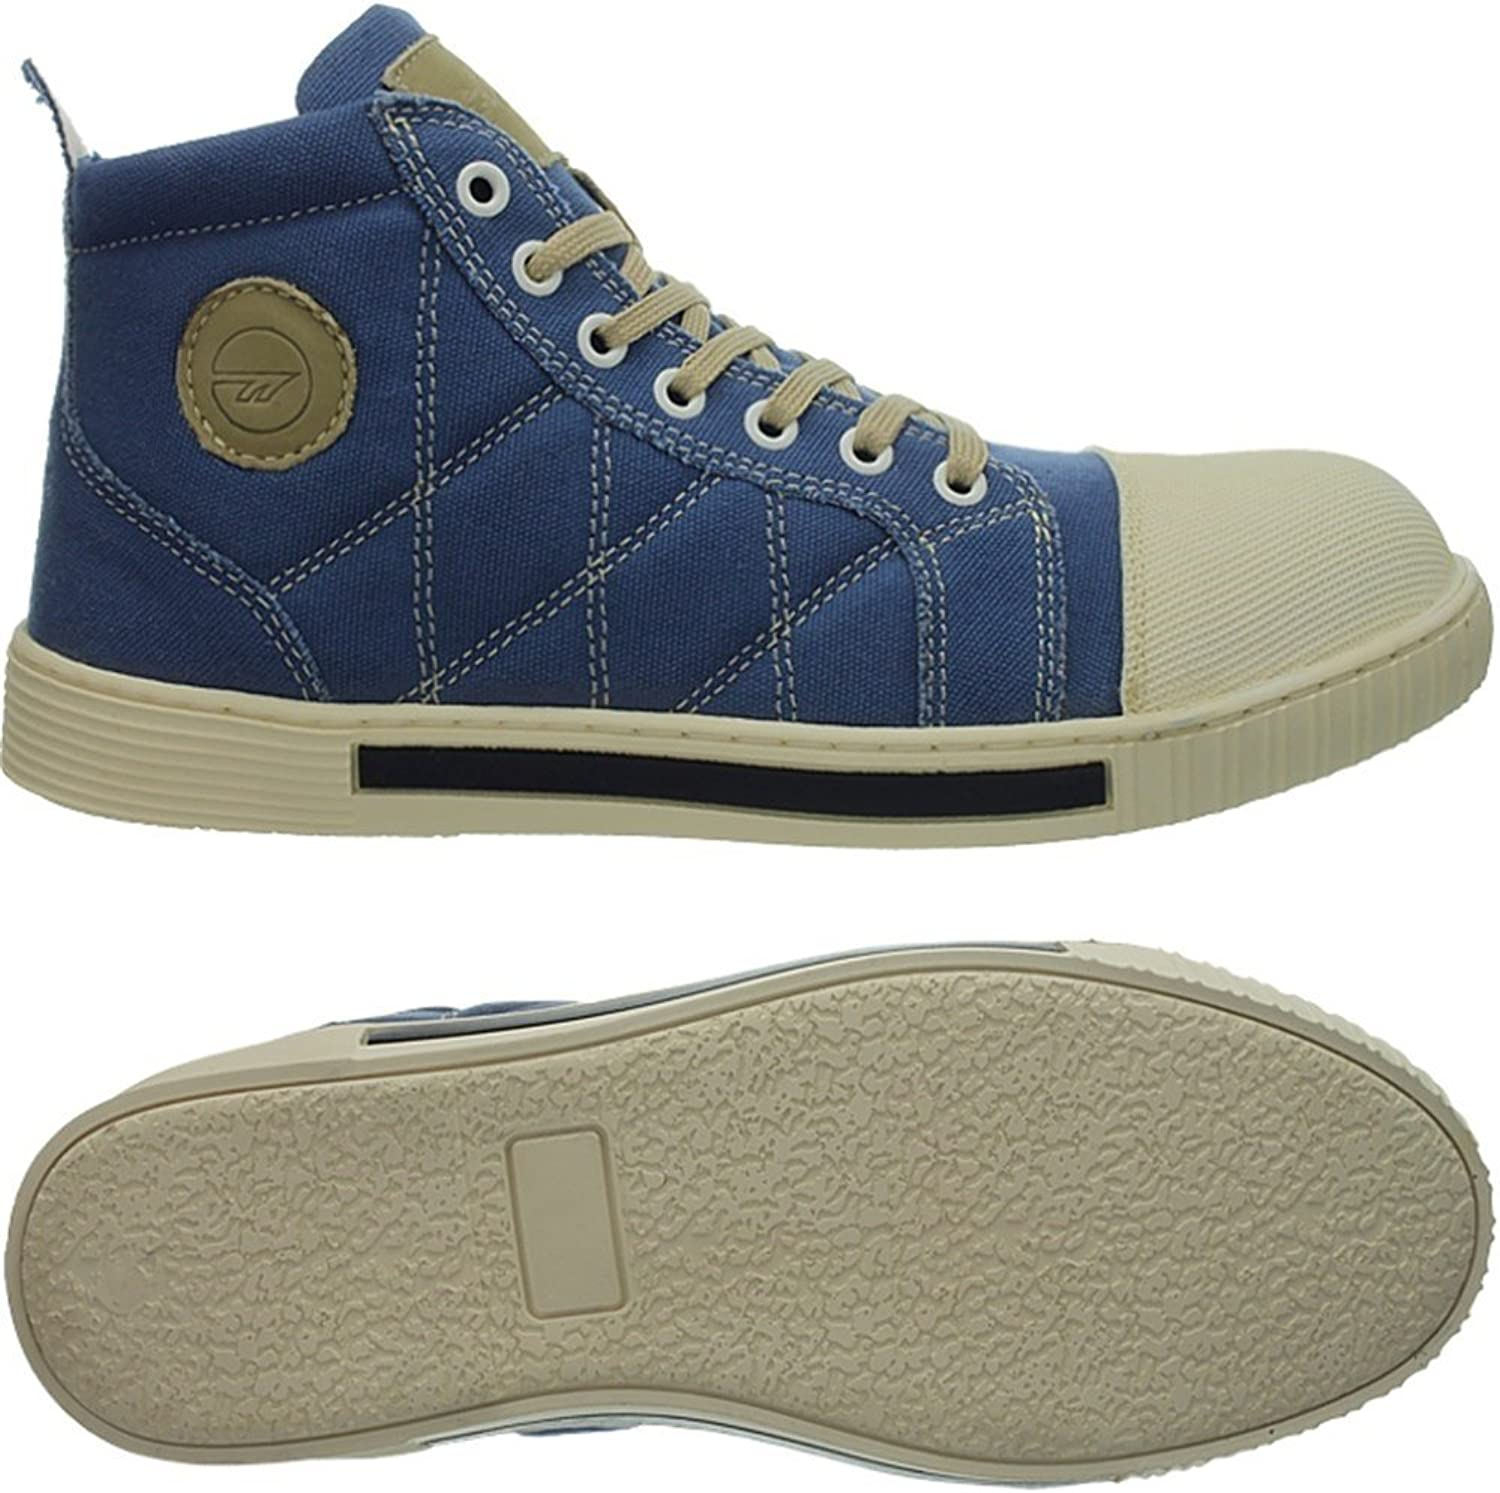 Hi-Tec Faro ST W002277 033 Mens Work boots   Safety boots   Safety trainers bluee 11 UK